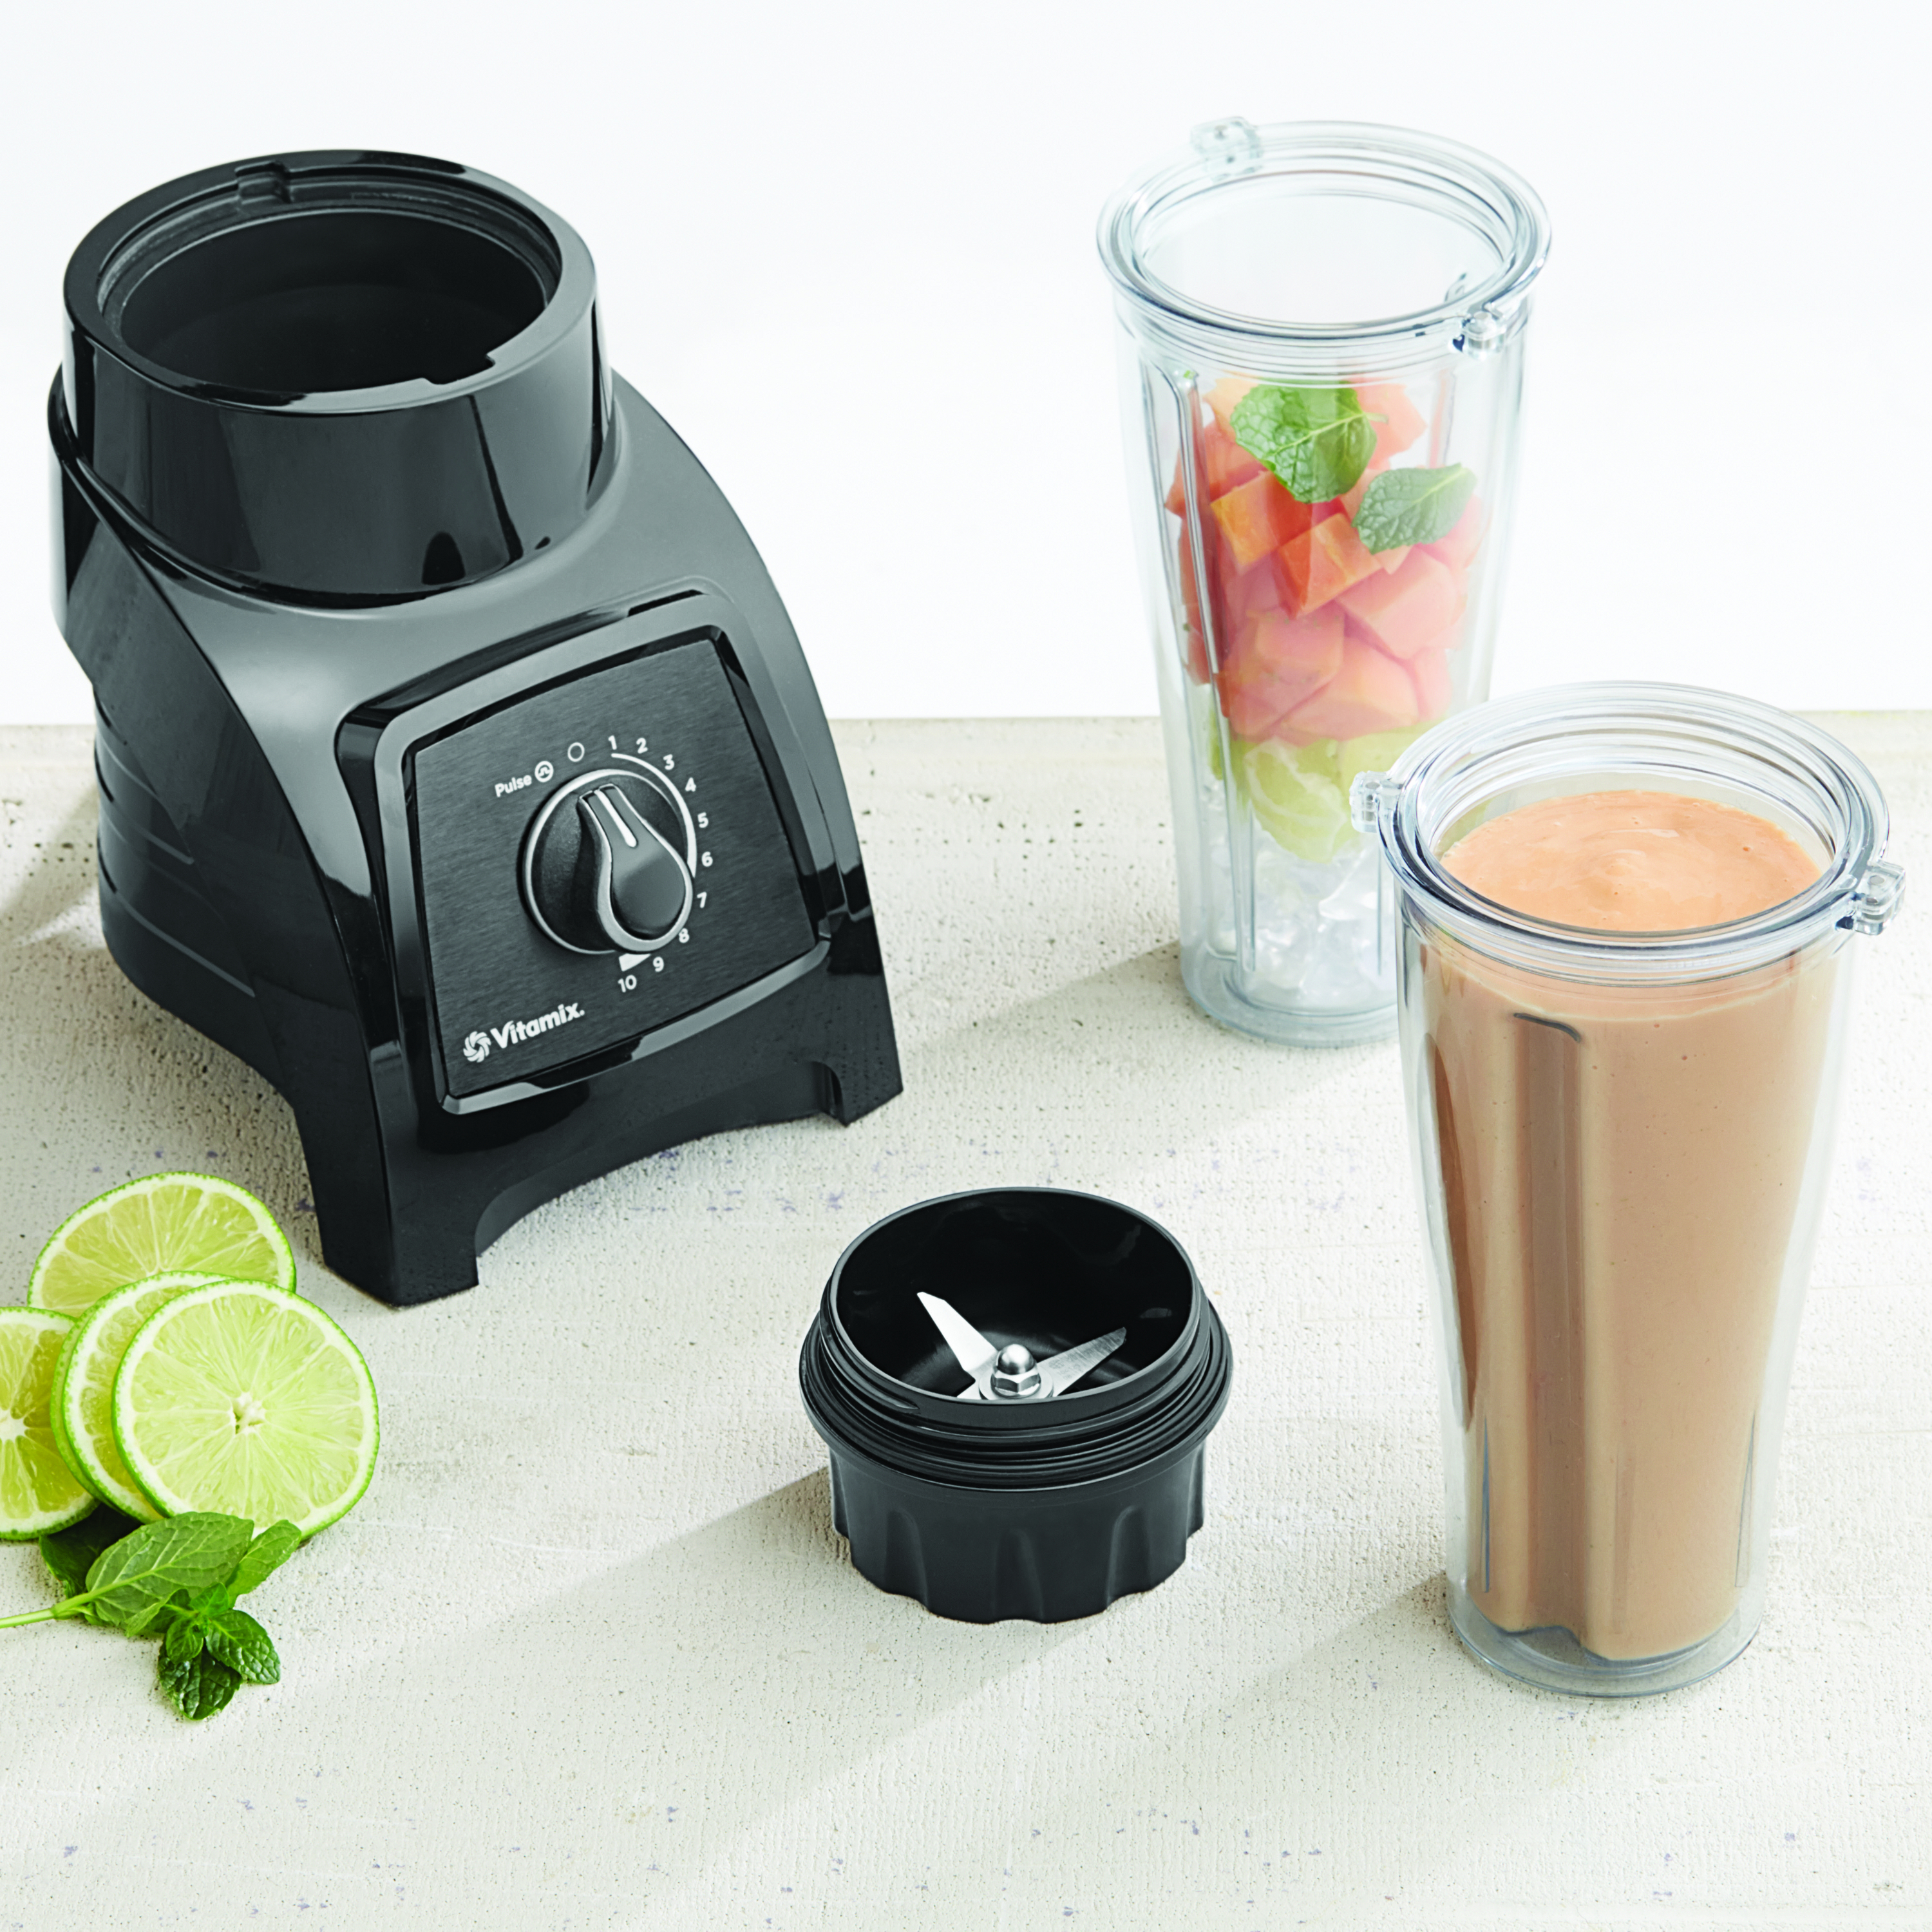 Vitamix S30 Black Personal Blender with 1 Compact and 2 Portable To-Go Containers